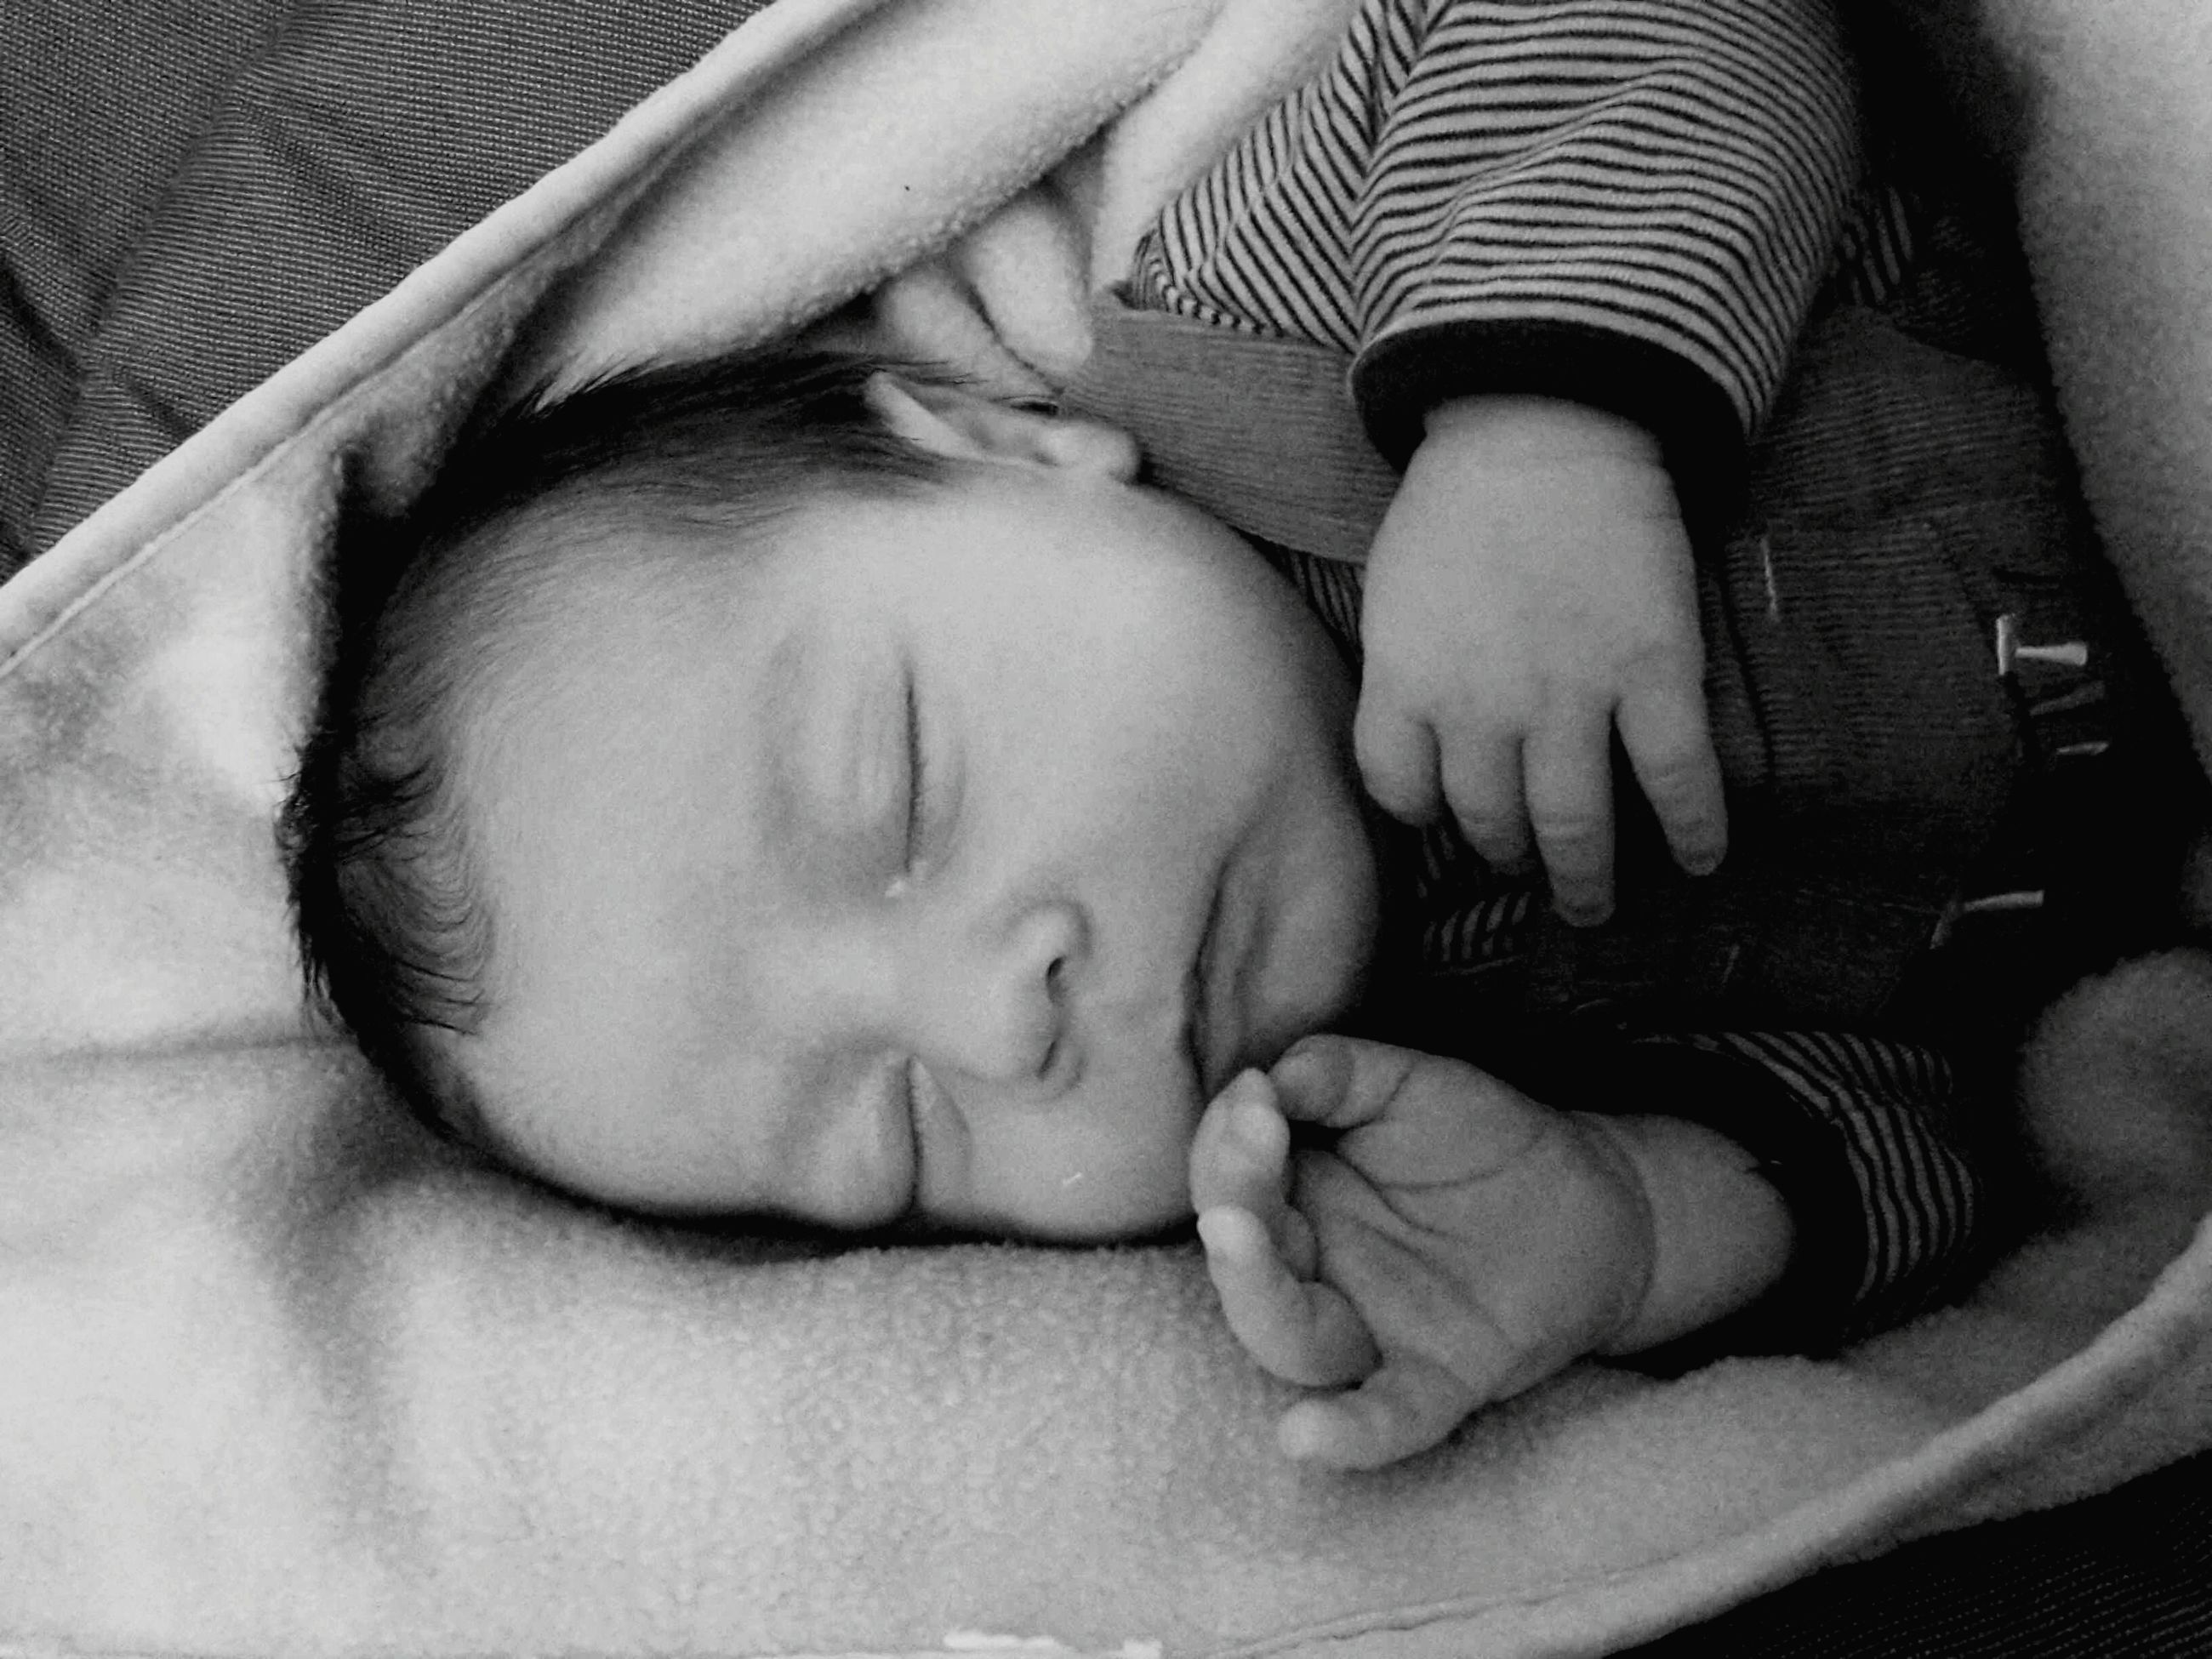 childhood, baby, indoors, innocence, toddler, babyhood, sleeping, unknown gender, relaxation, cute, boys, elementary age, bonding, bed, togetherness, lying down, lifestyles, family with one child